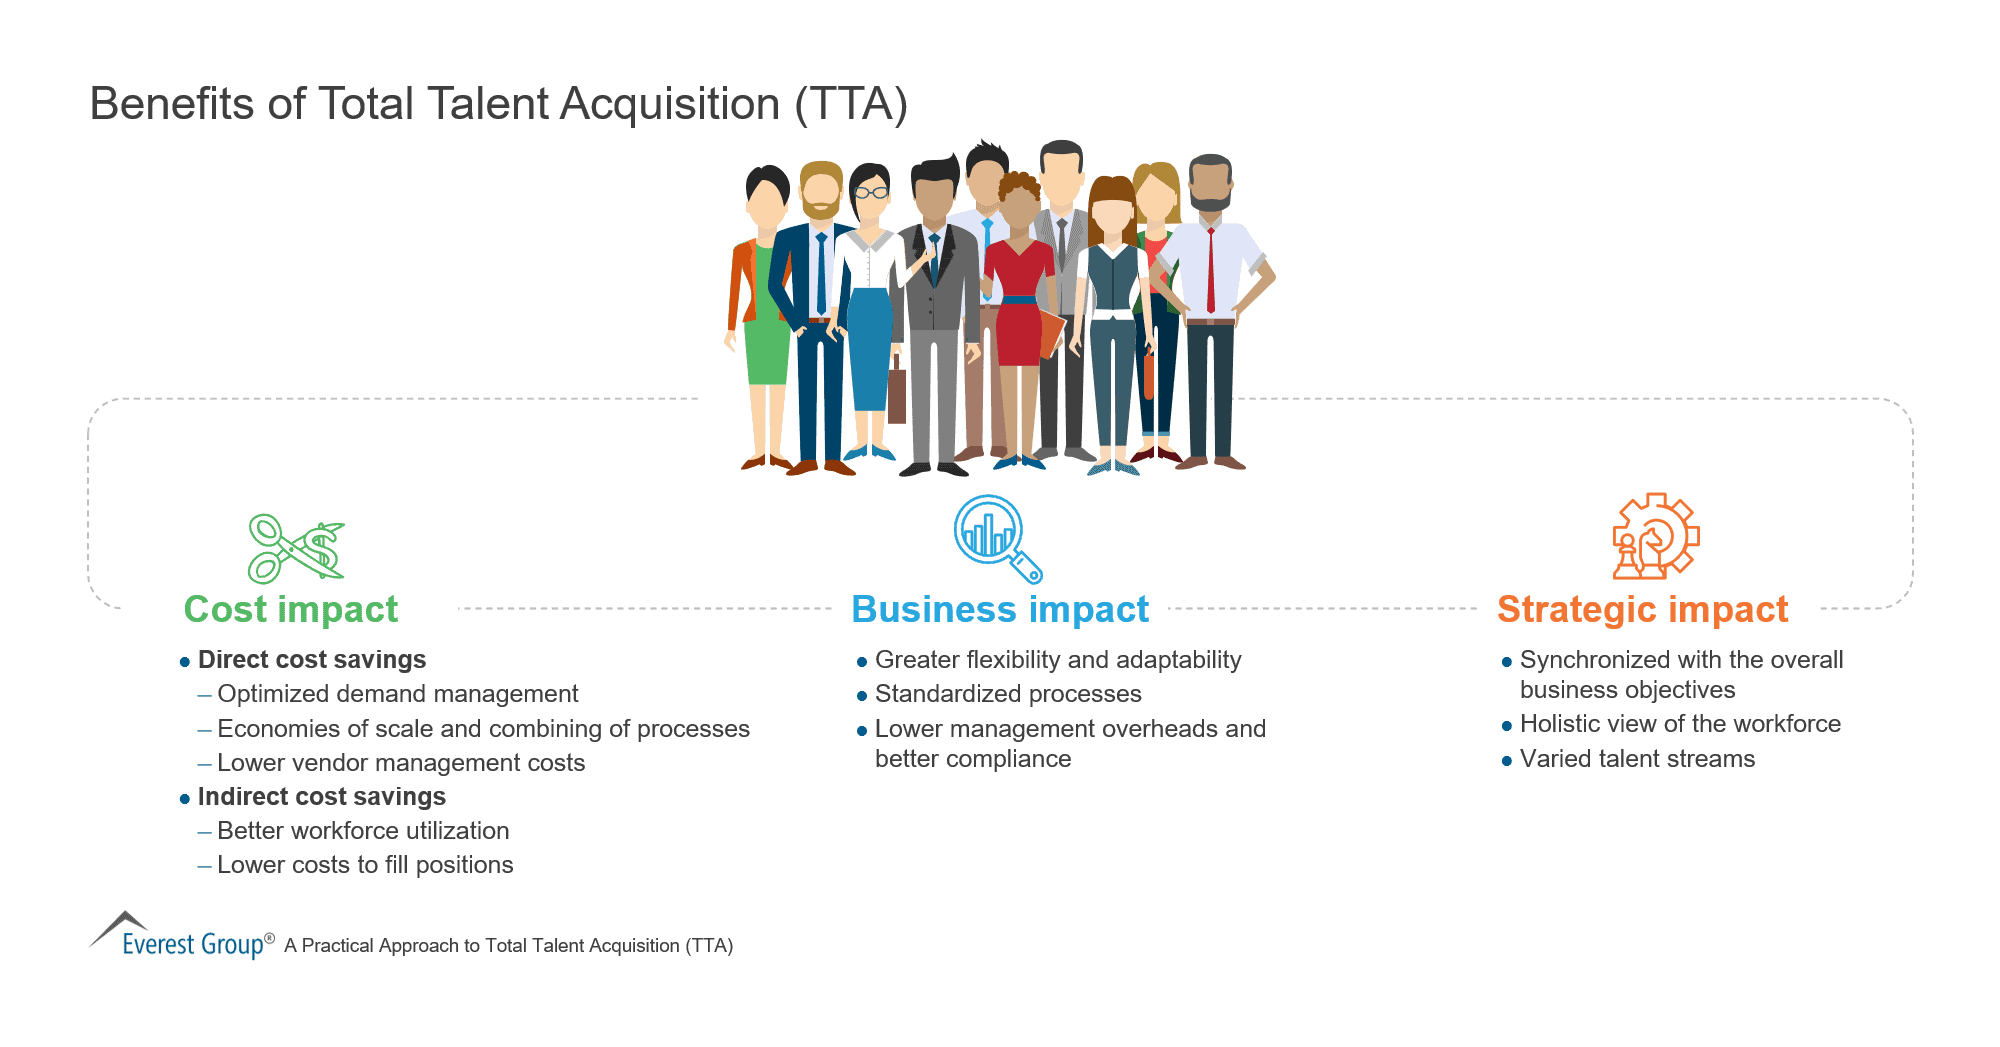 Benefits of Total Talent Acquisition